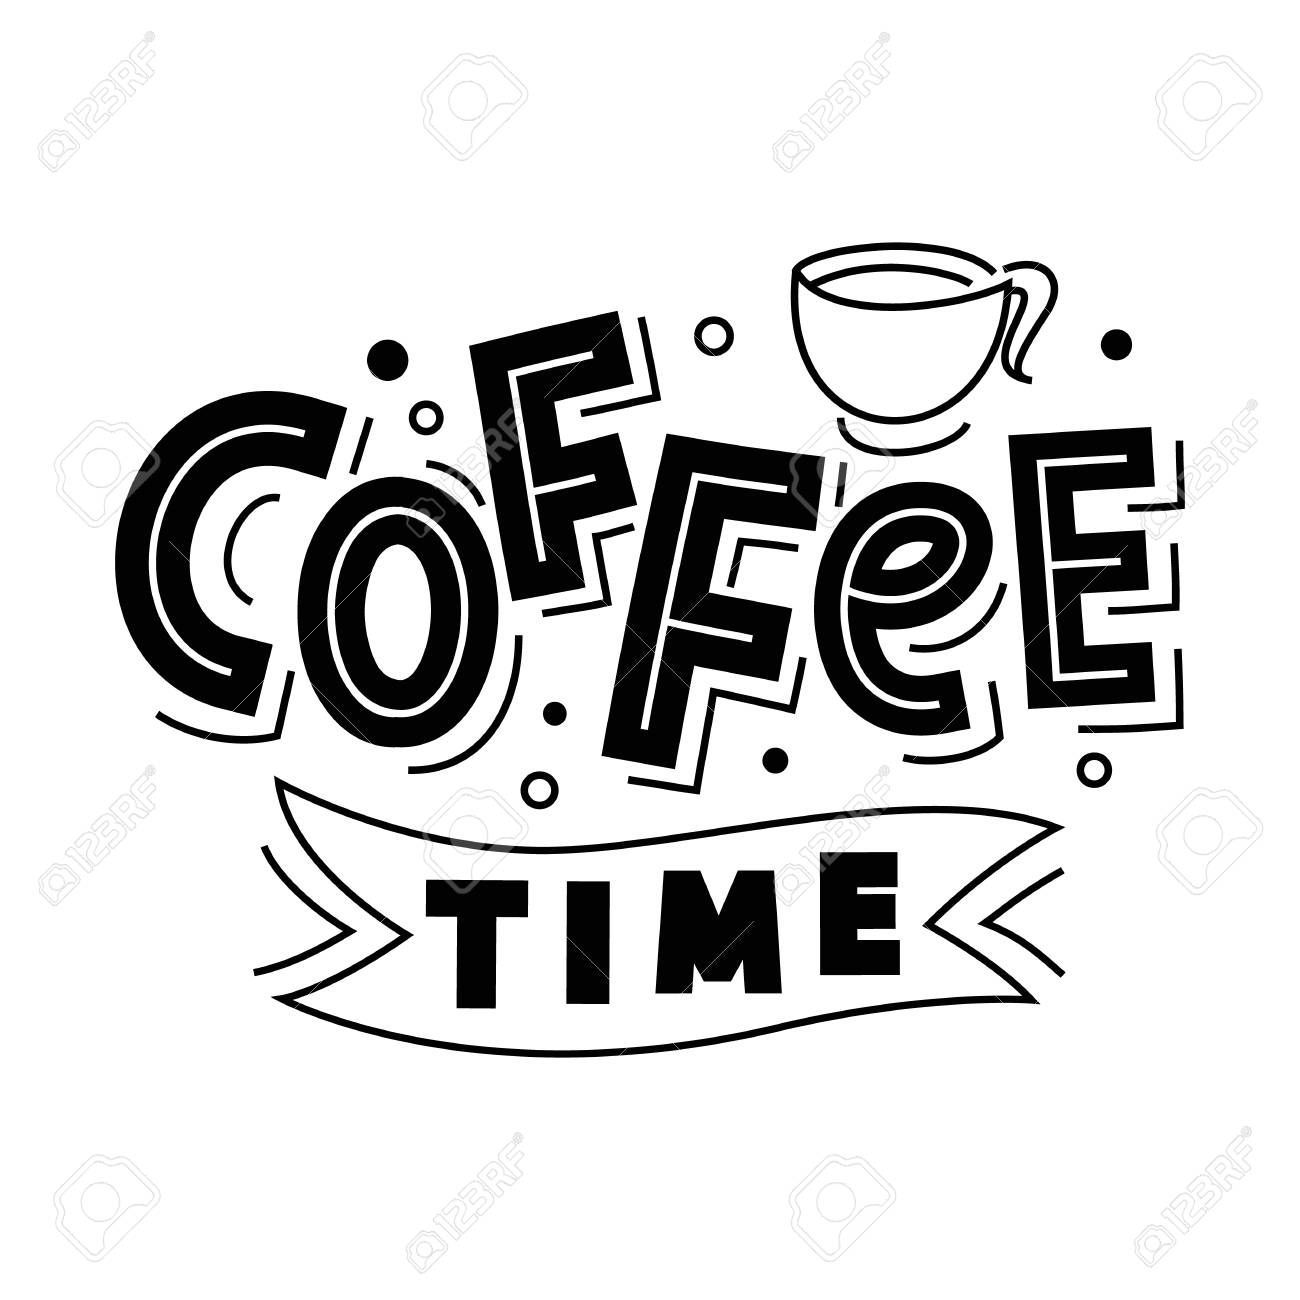 time lettering logo badge isolated on white Coffee time lettering logo badge isolated on white